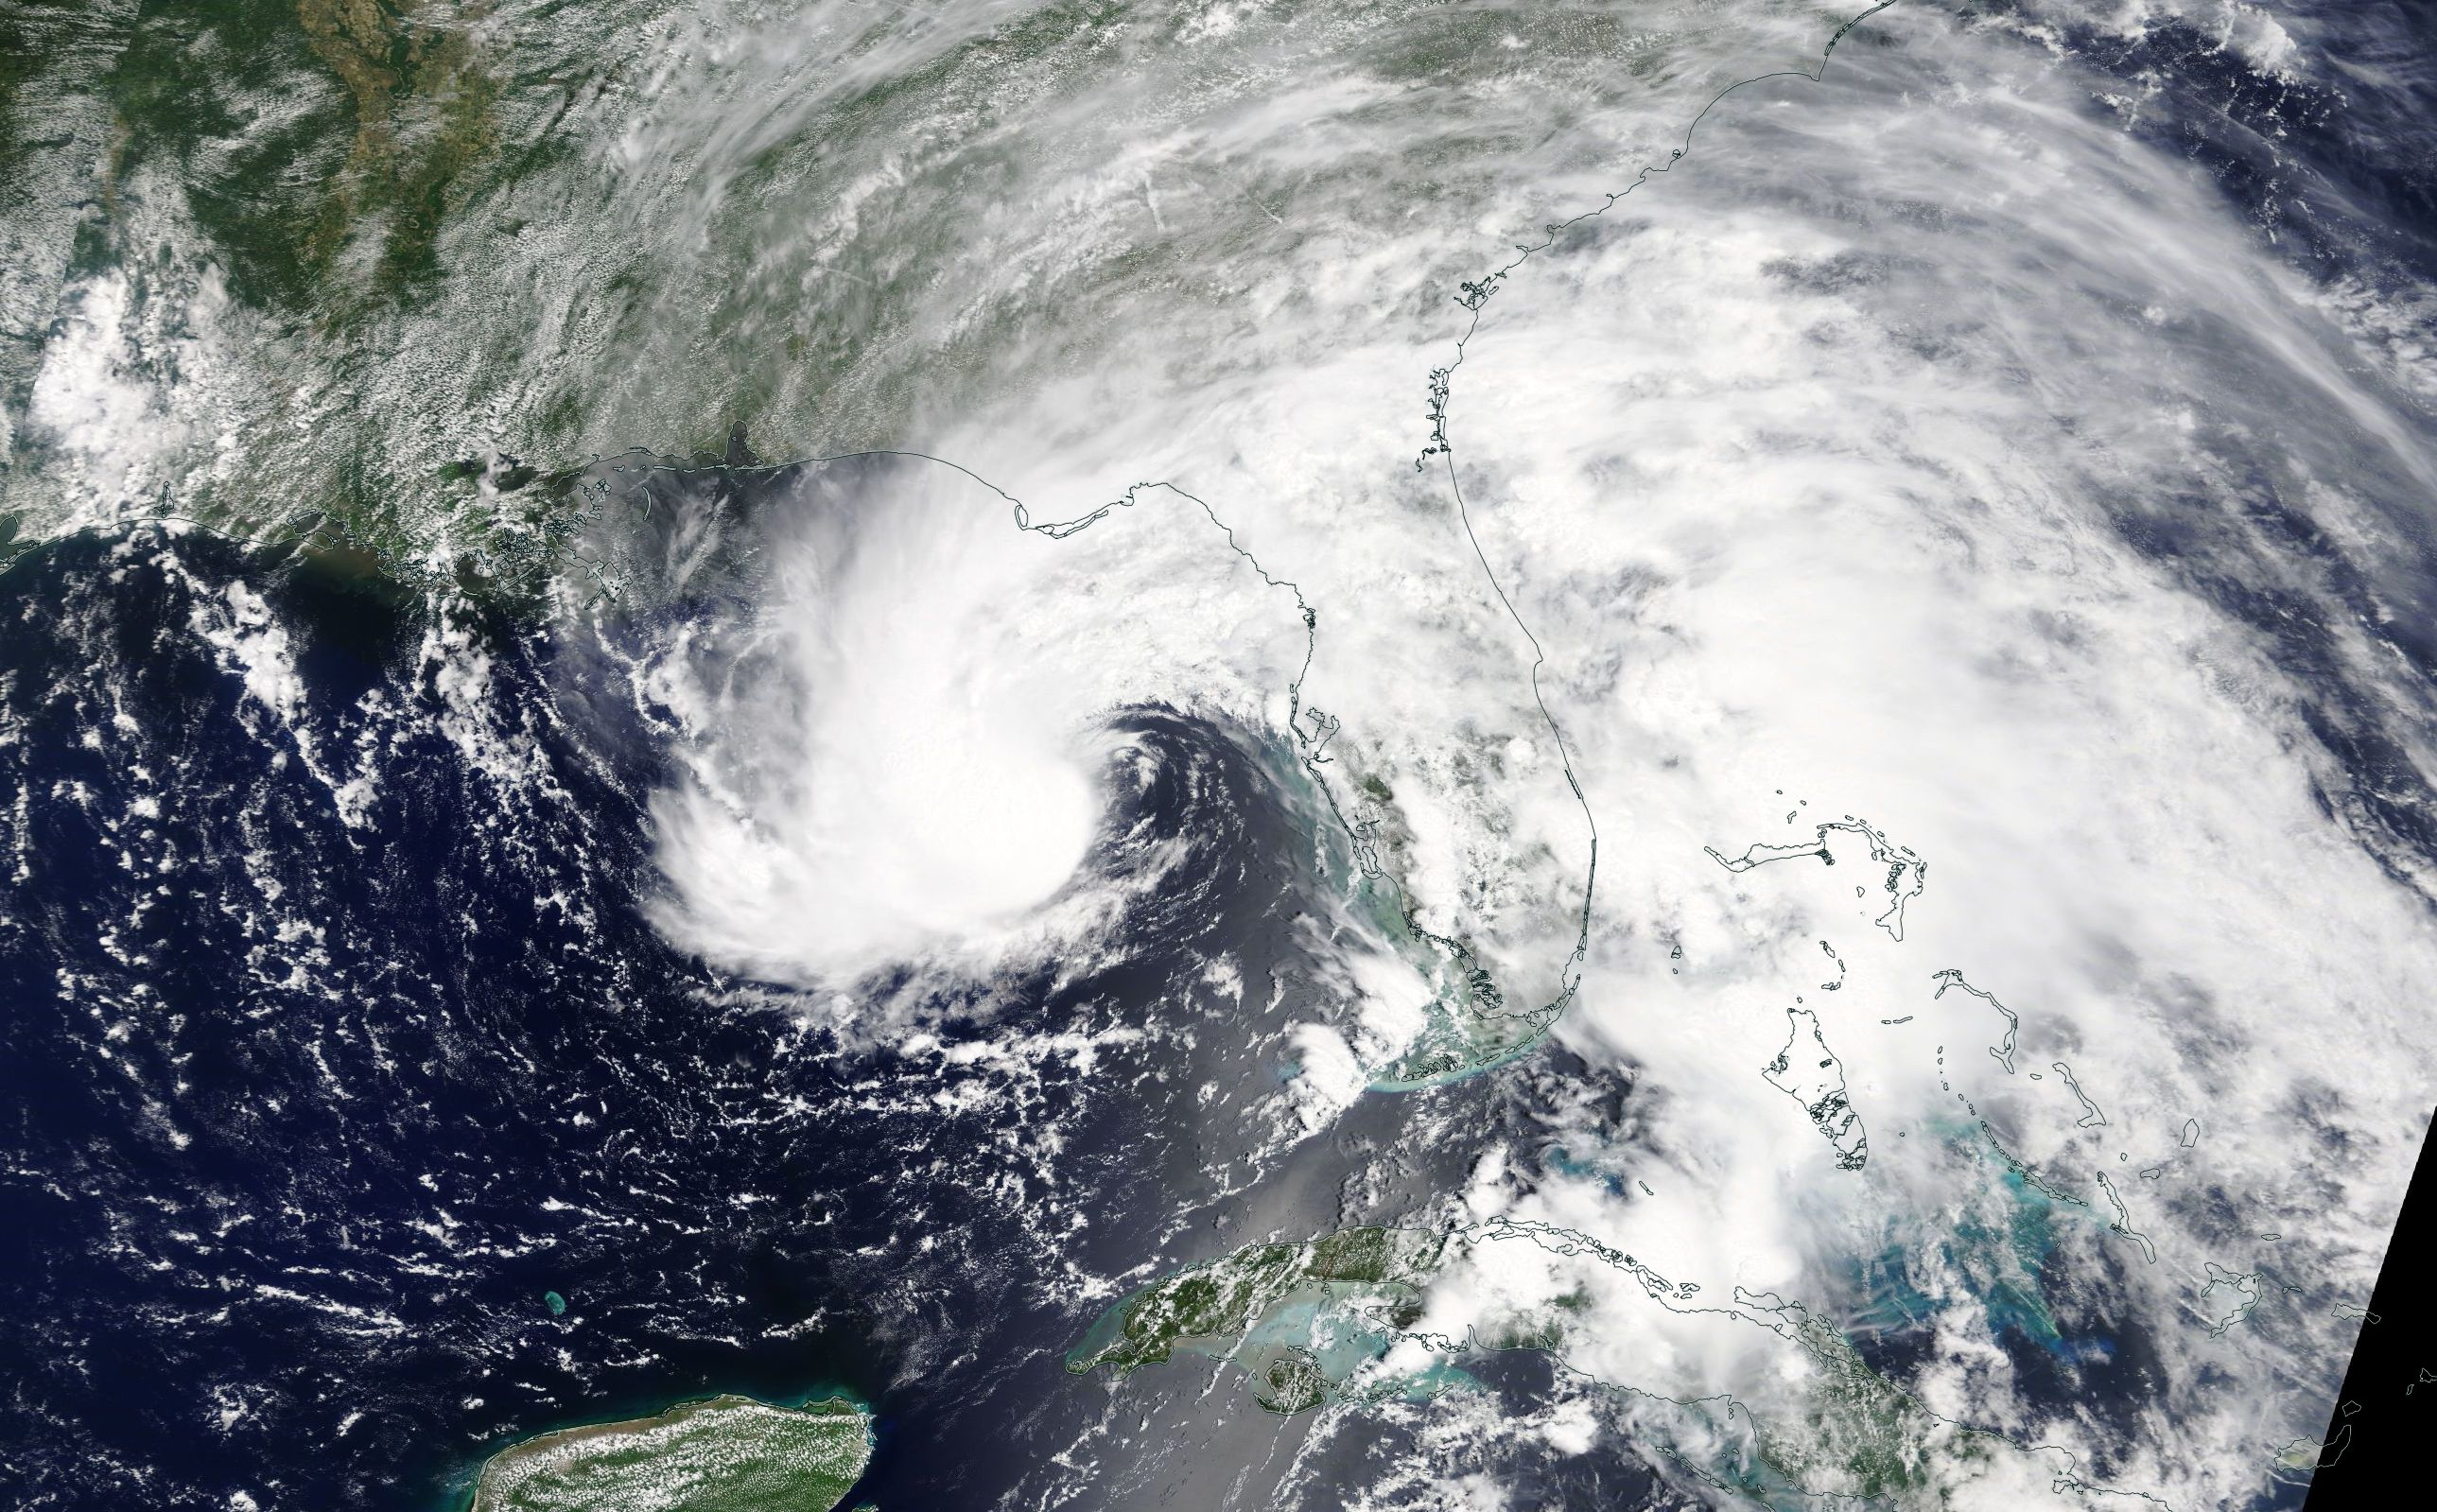 On May 27, NASA's Terra satellite captured an infrared image of subtropical storm Alberto's center of circulation hundreds of miles south of the Florida panhandle. A thick band of thunderstorms east of the center extended over the entire state of Florida.